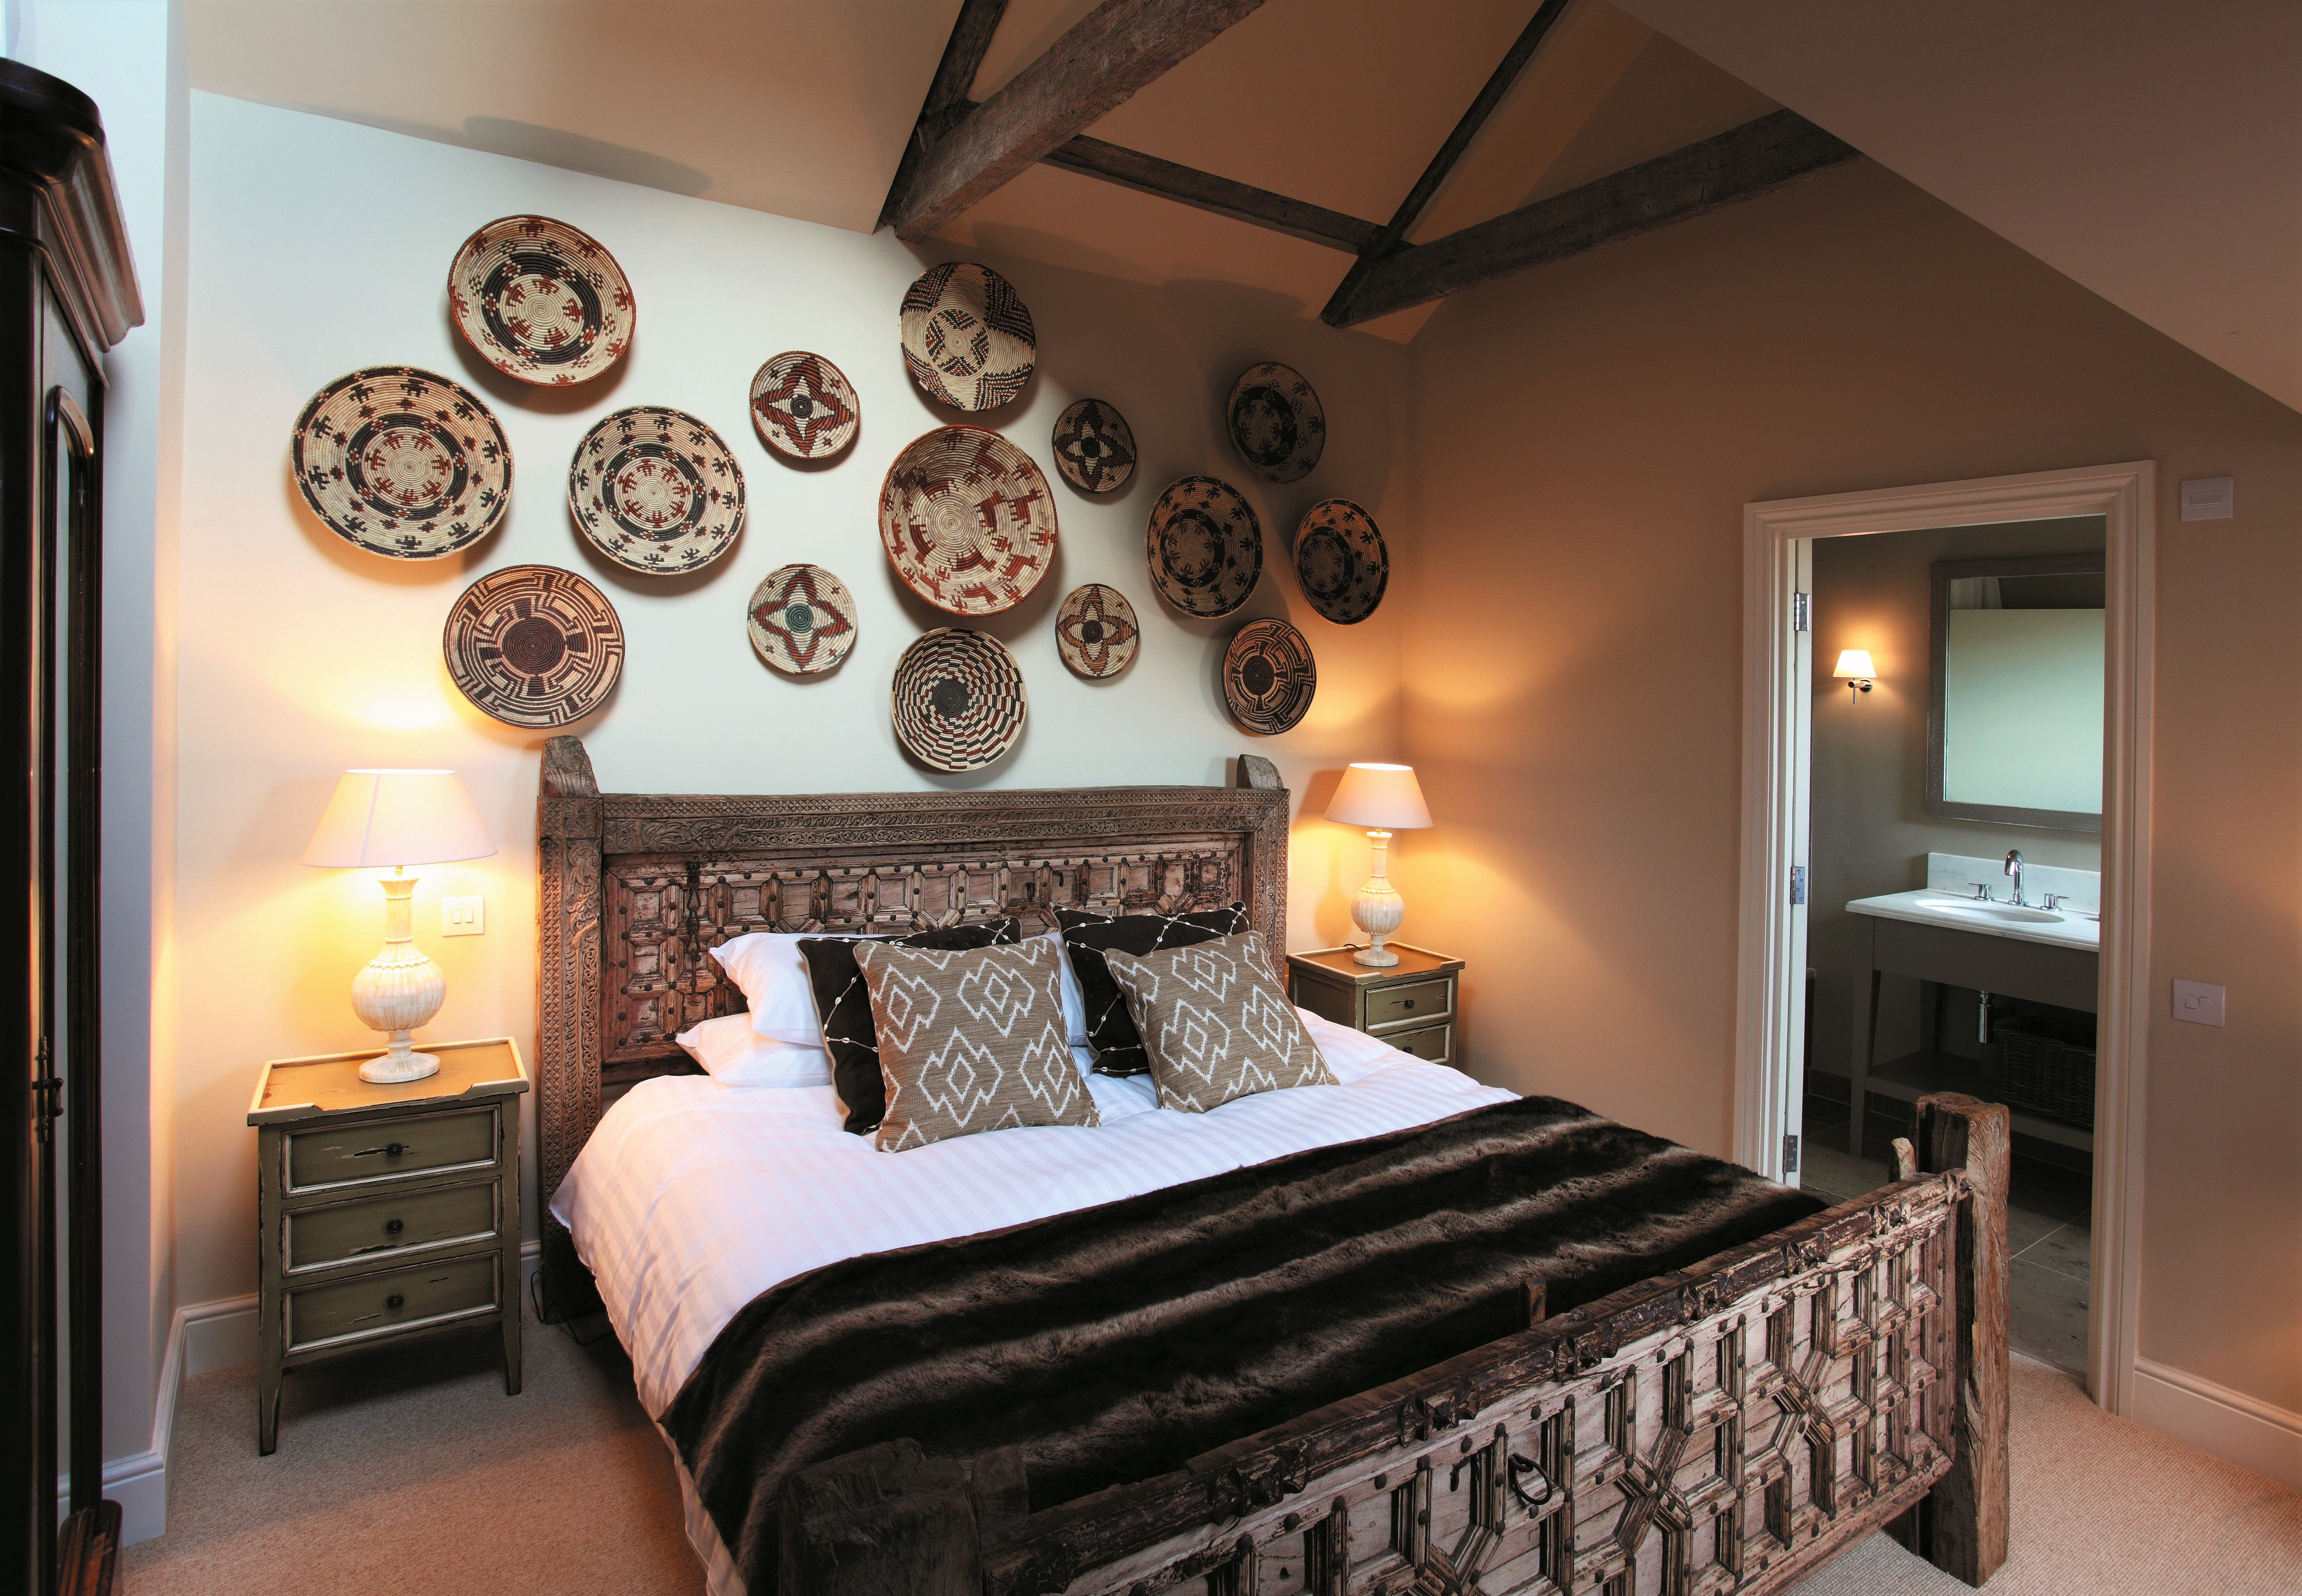 The Ship Hotel, Brancaster - Boutique stays and fine dining